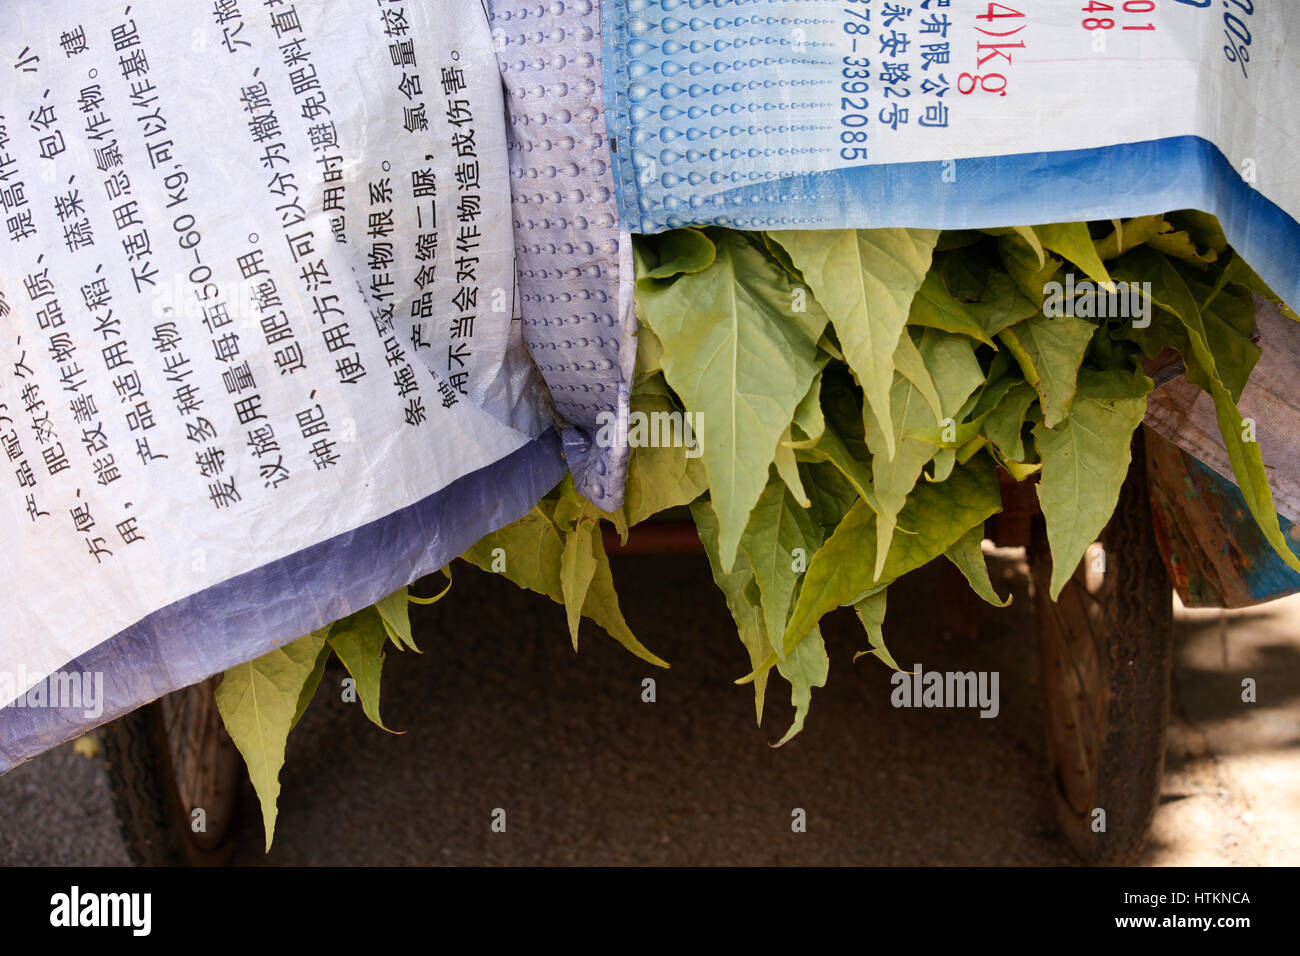 Tobaco leaves stick out from underneath covering during the tobacco harvest at Dion Tou village, near Shaxi in Yunnan - Stock Image